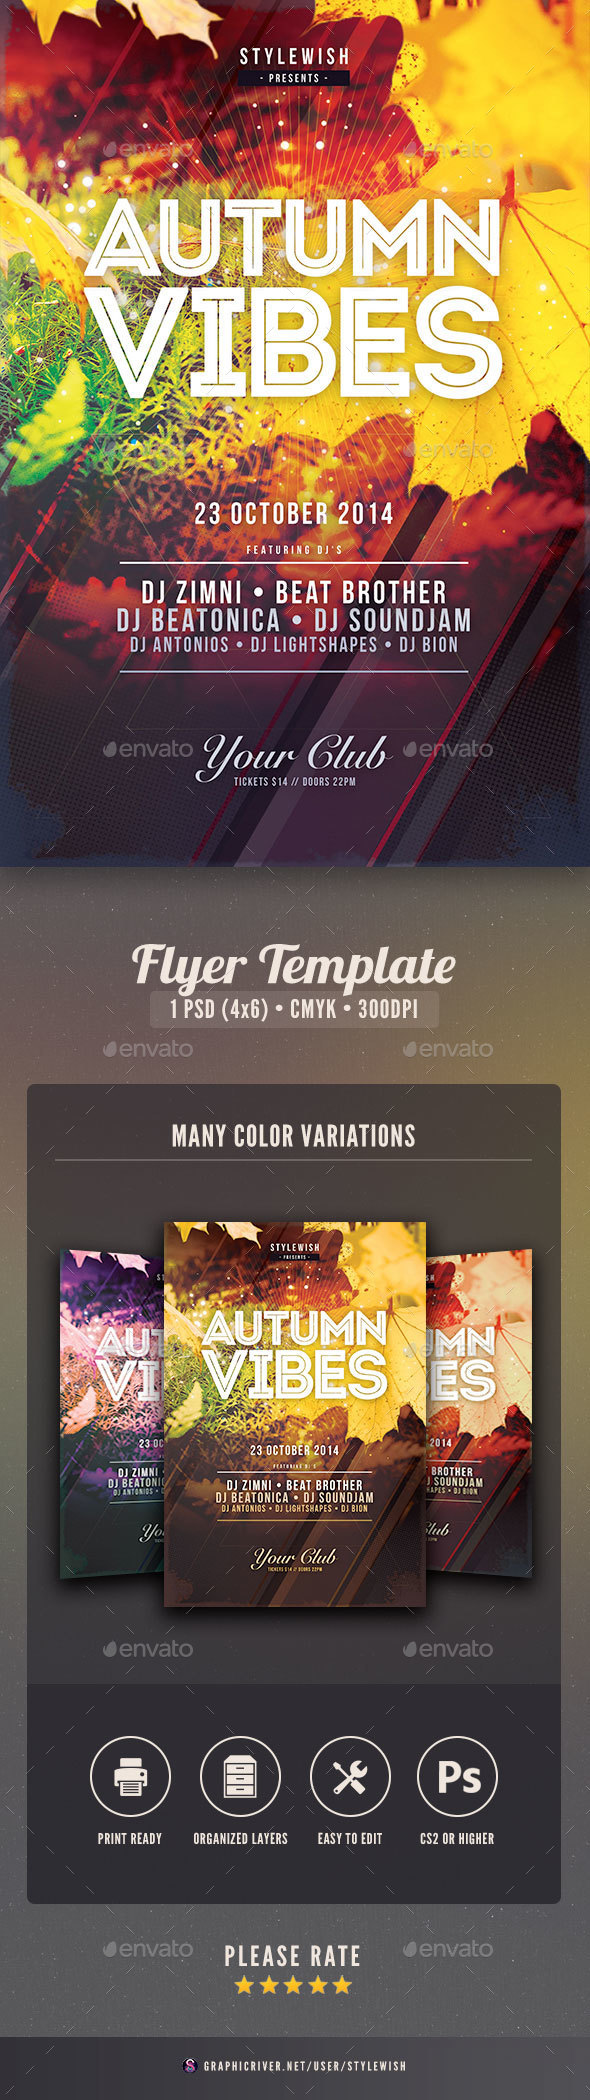 Autumn Vibes Flyer - Clubs & Parties Events